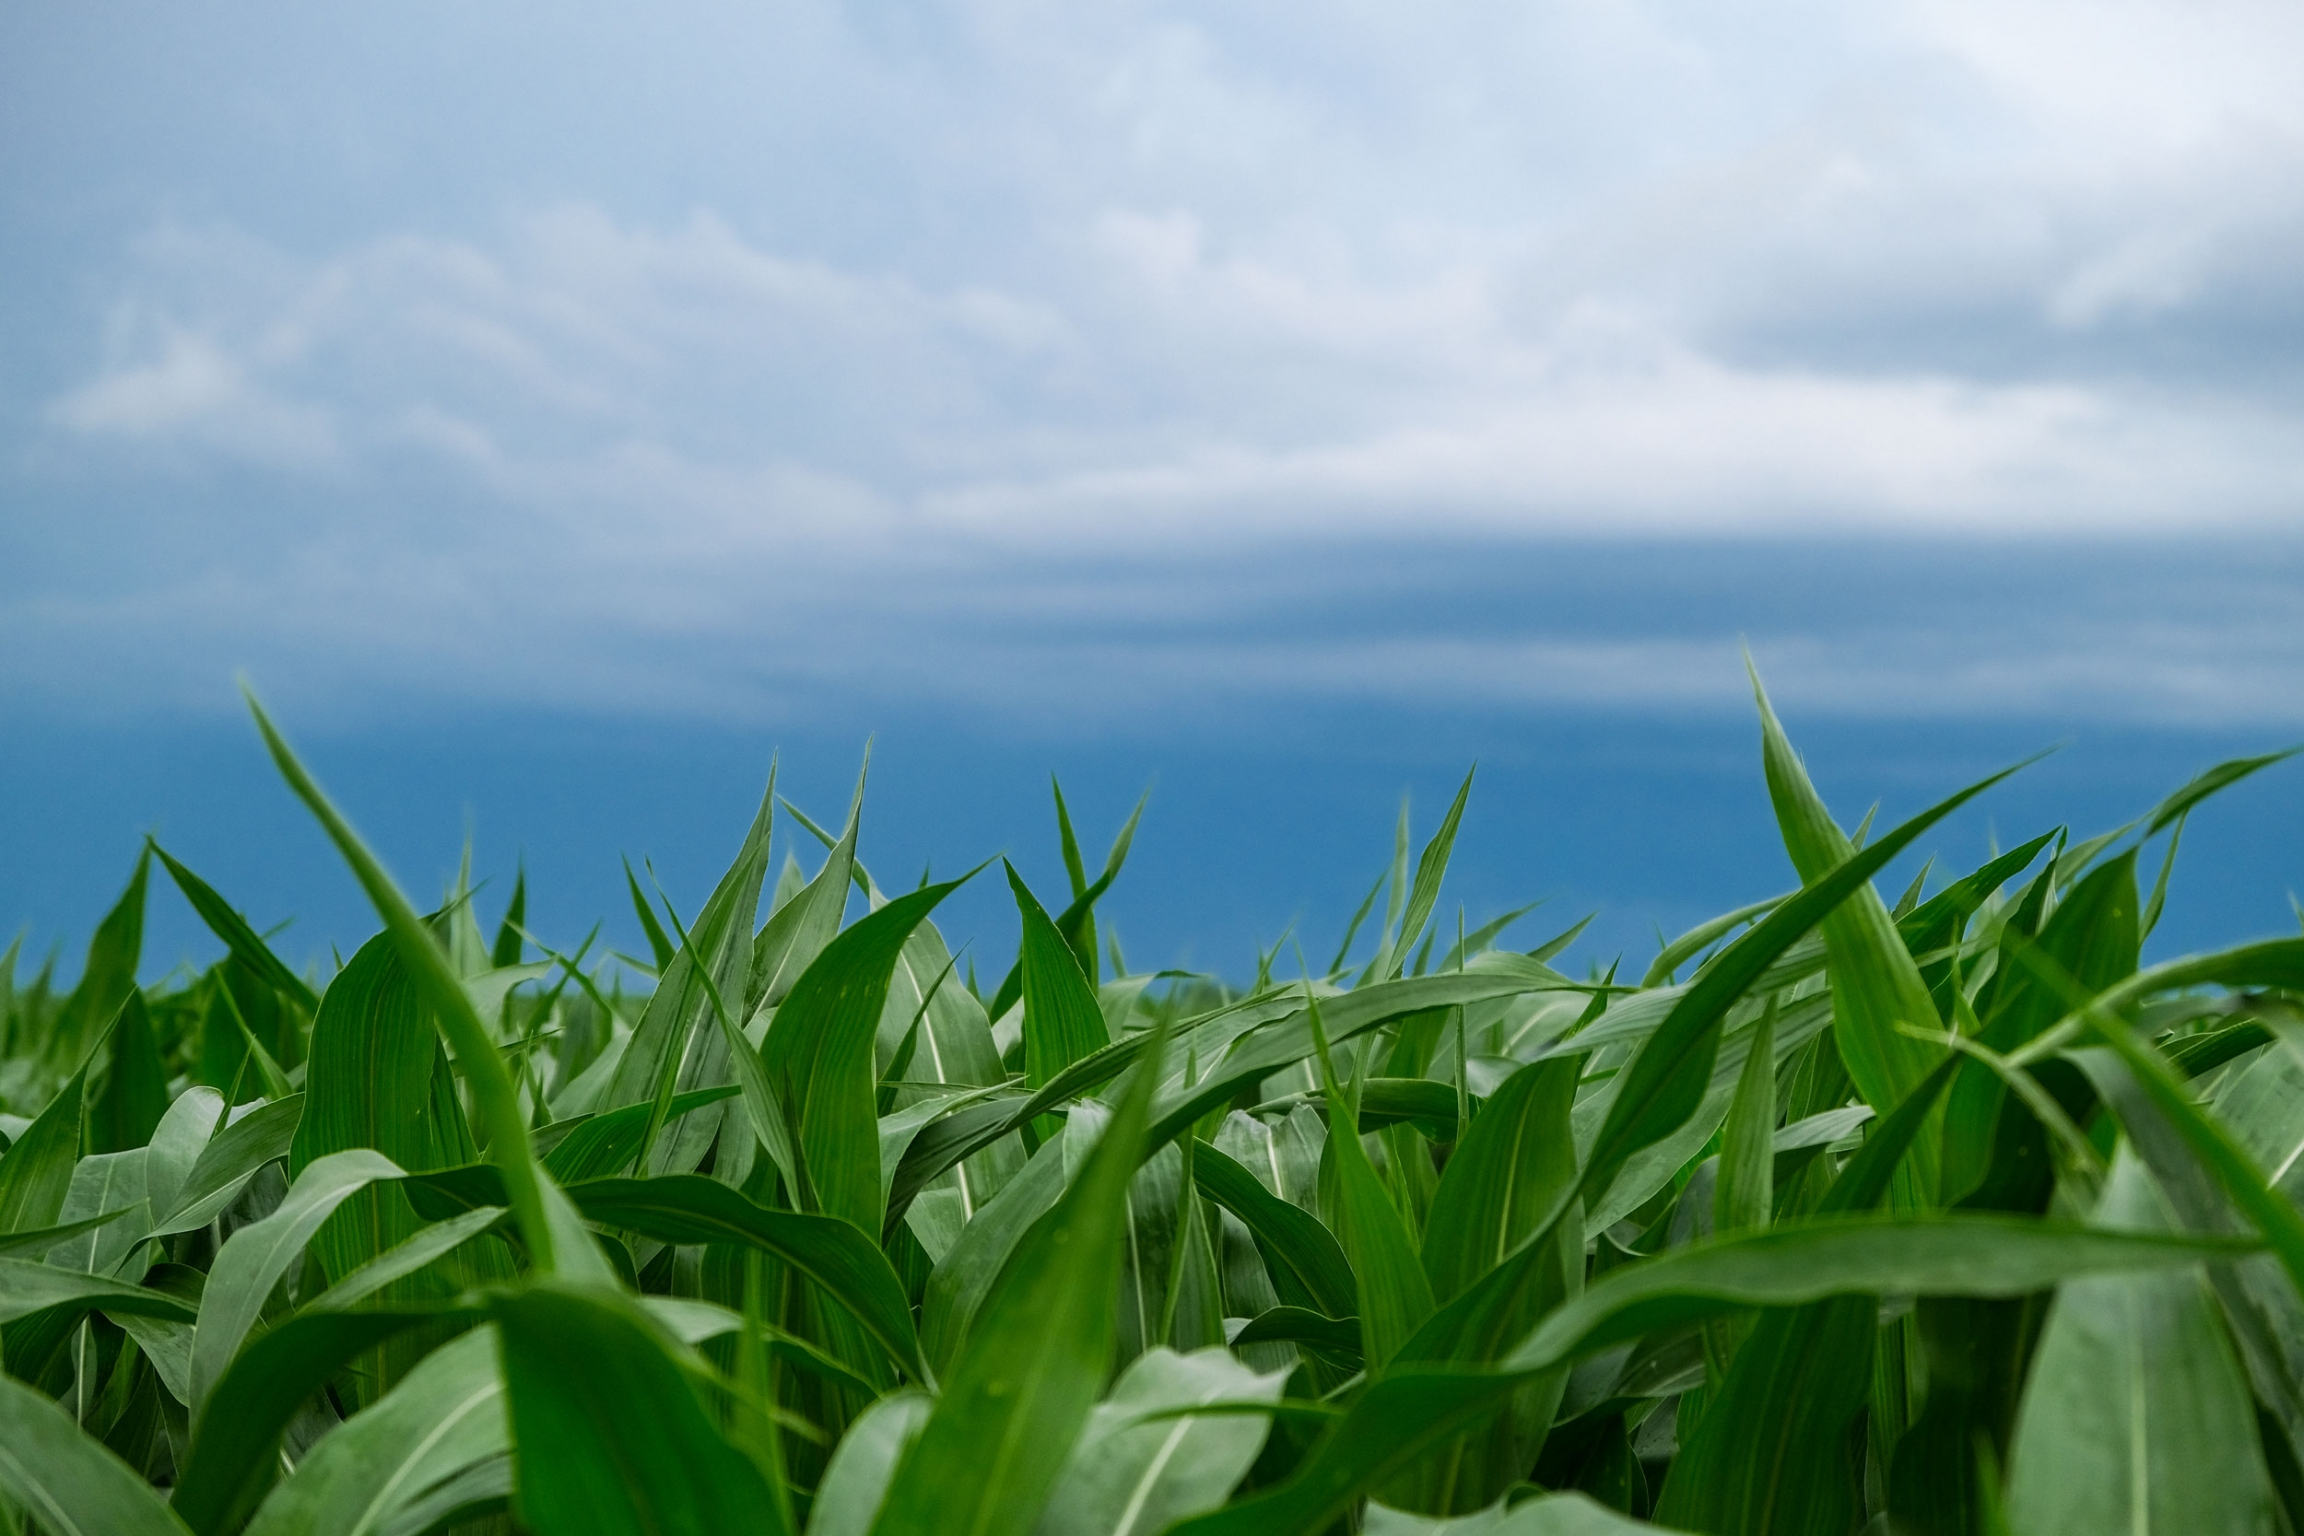 A field of young green corn with a blue sky in the background.